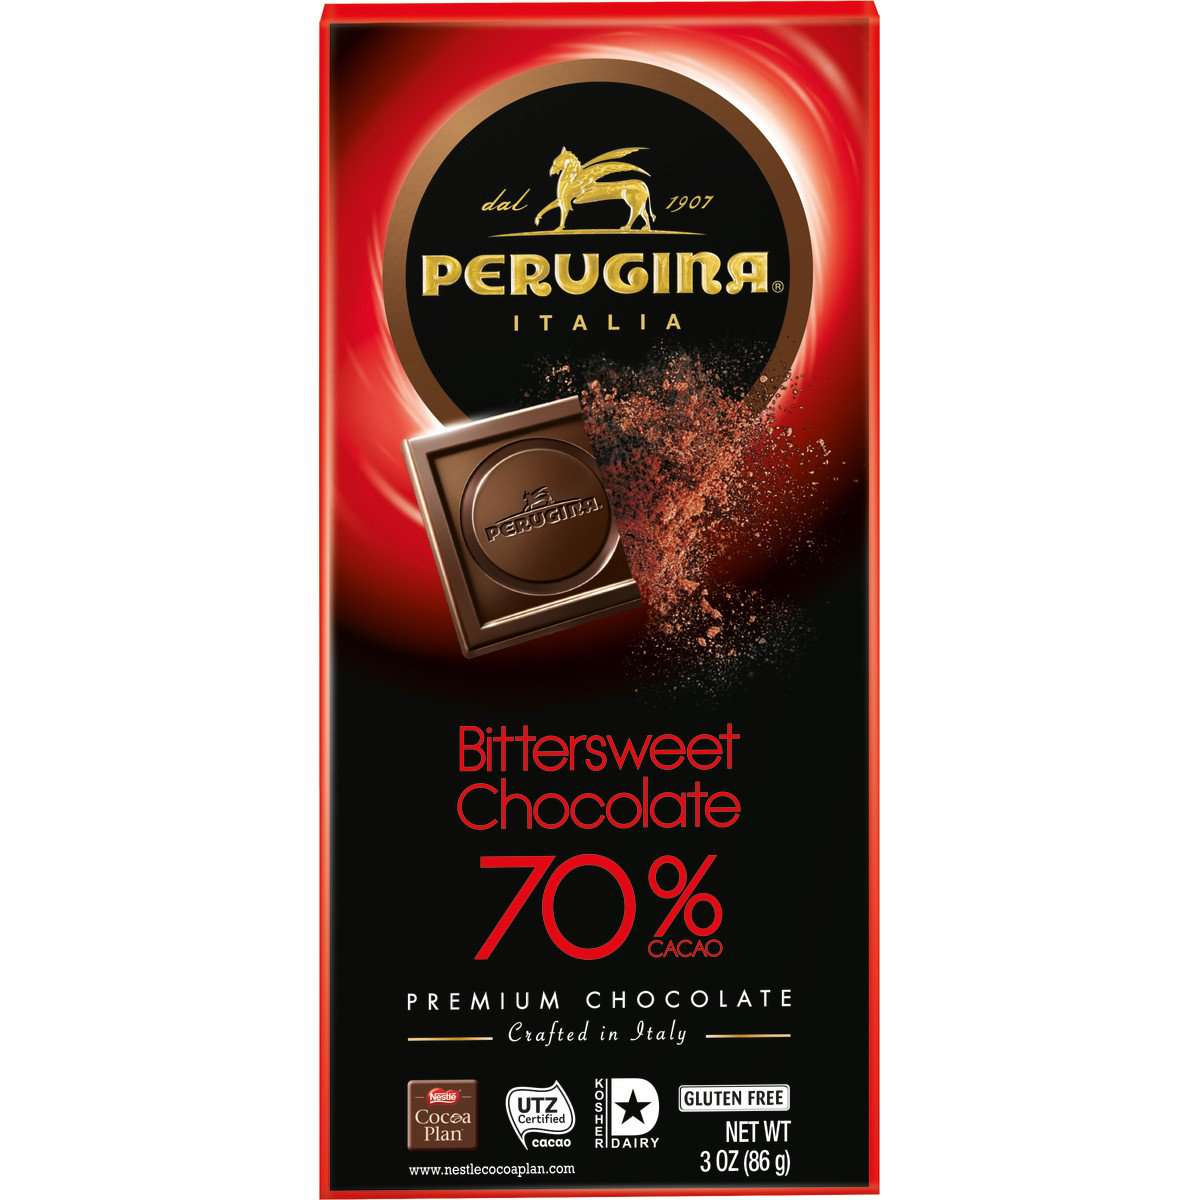 Perugina Bittersweet Chocolate Bar 70%, 86 g